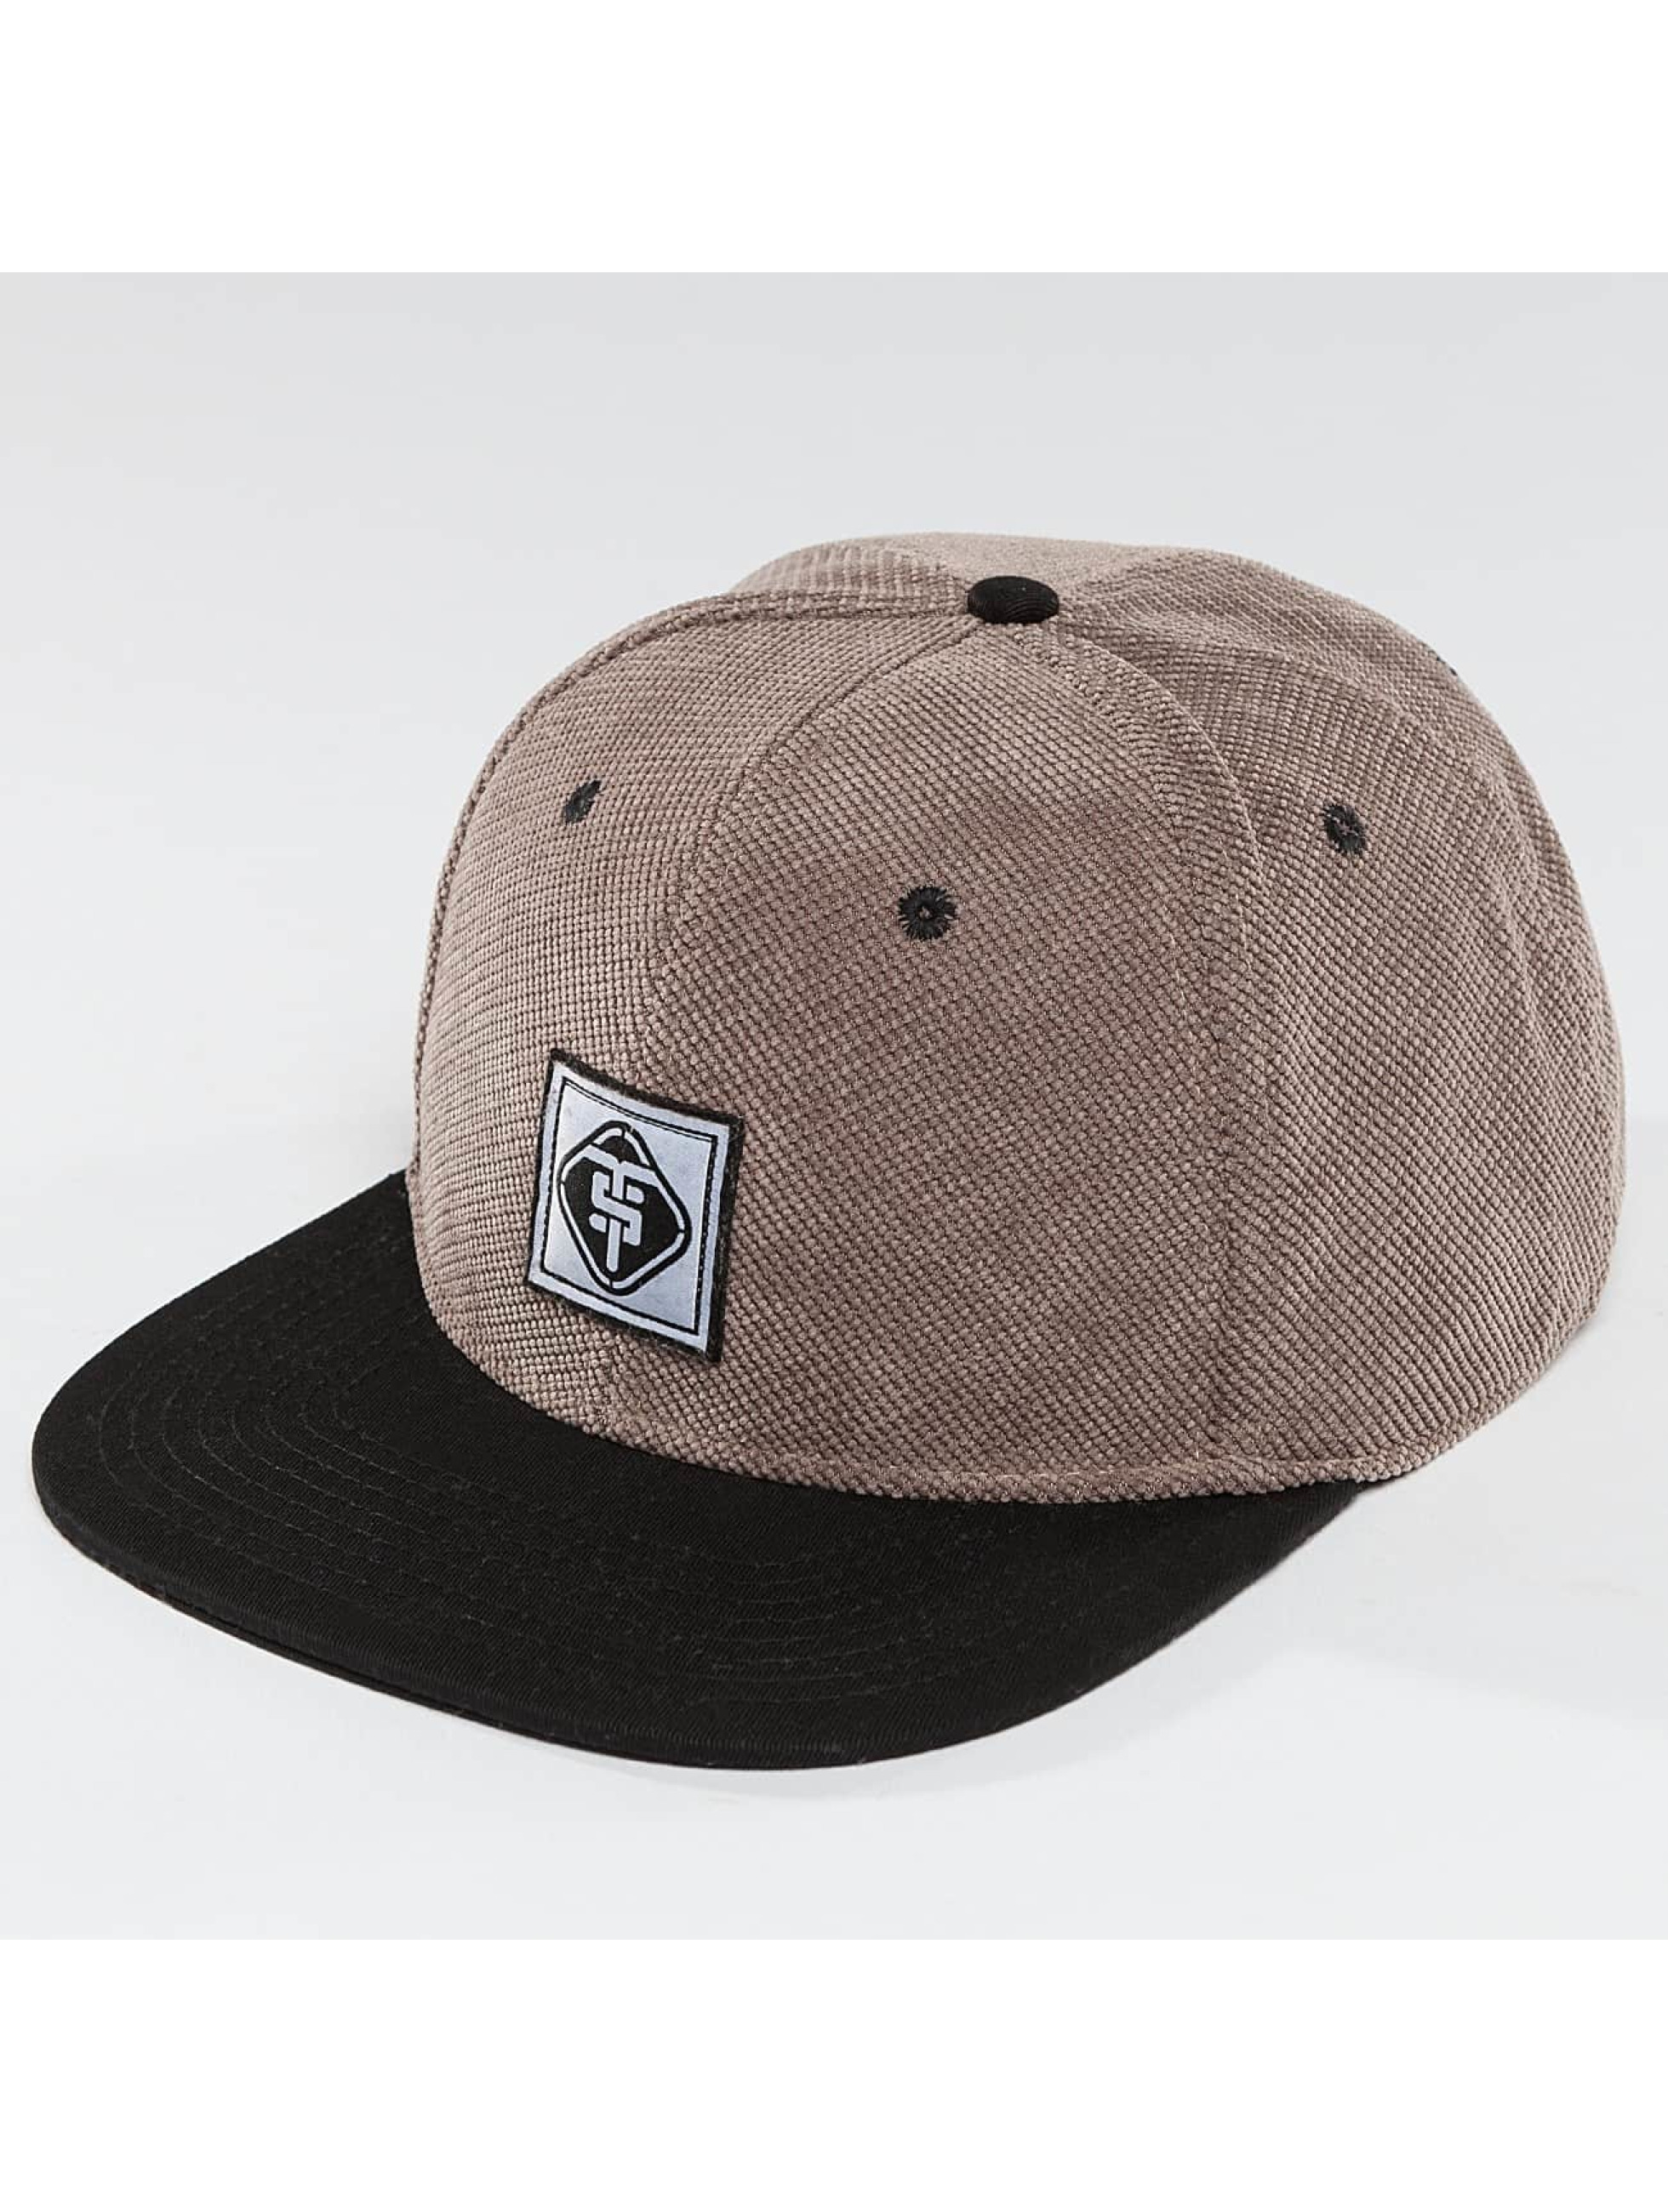 TrueSpin Casquette Snapback & Strapback Touchy beige